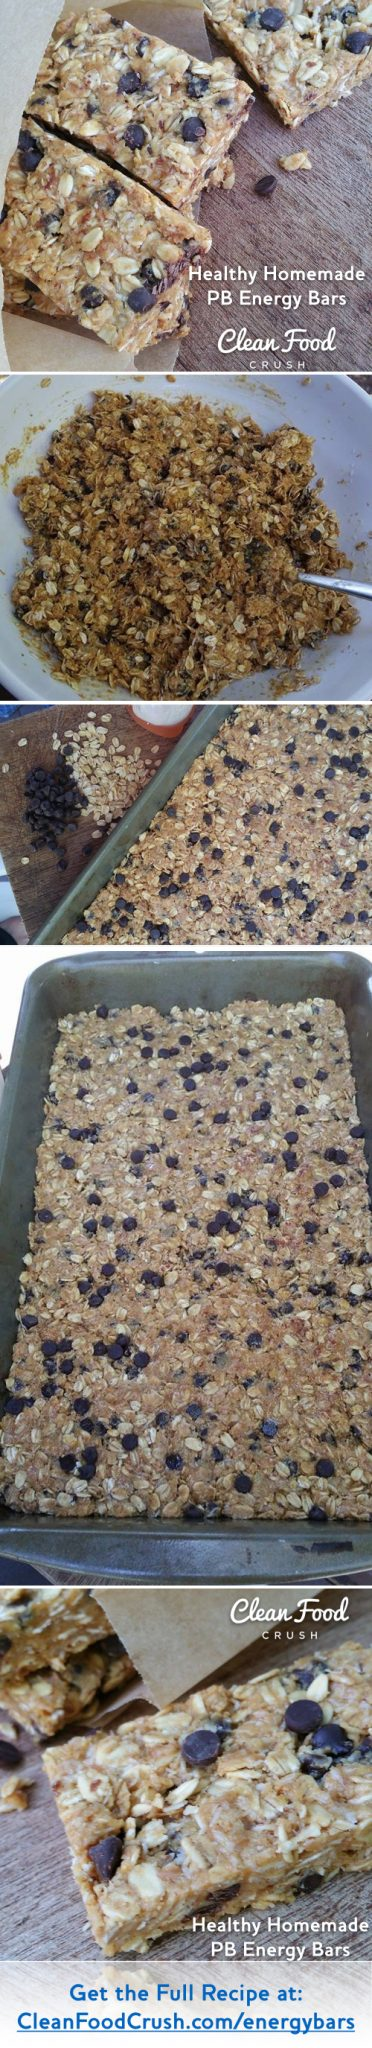 Clean Eating Healthy Homemade PB Energy Bars CleanFoodCrush https://cleanfoodcrush.com/No-Bake-Energy-Bars